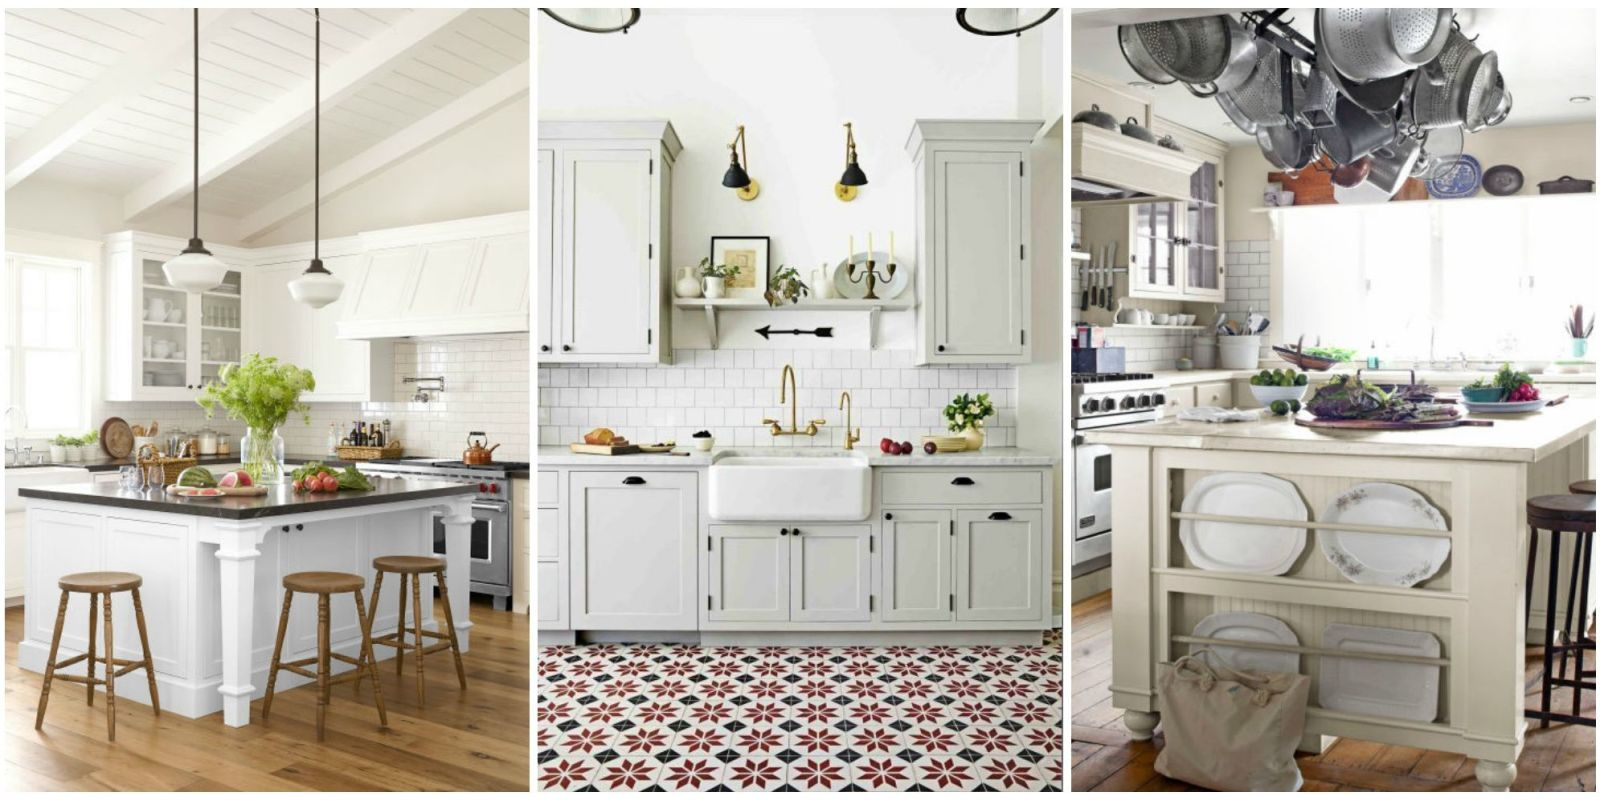 10 Best White Kitchen Cabinet Paint Colors